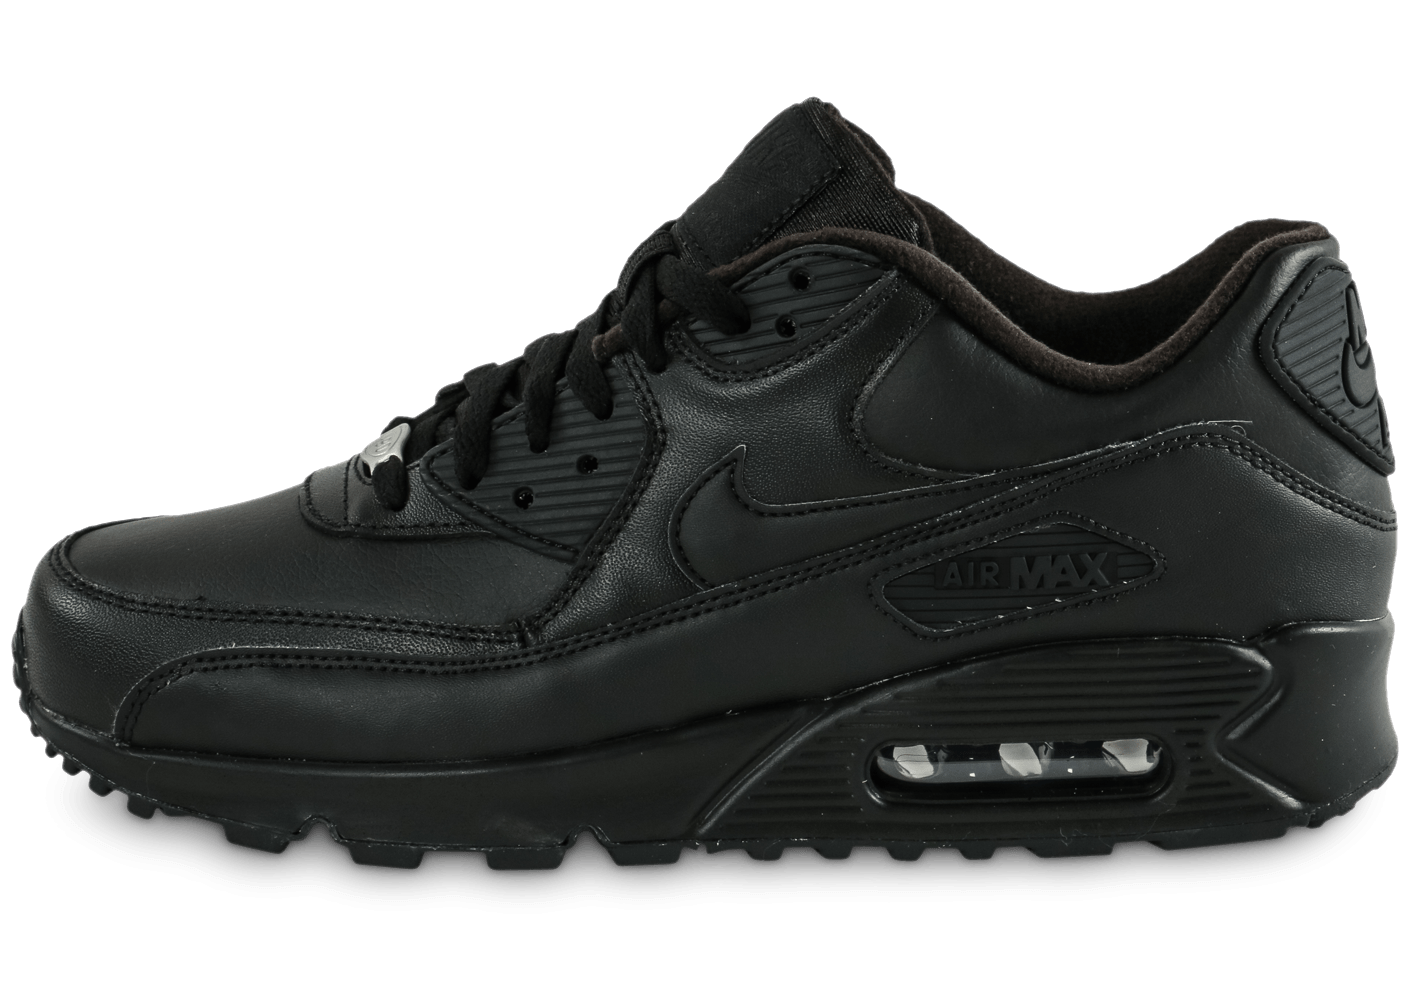 Prix ??fou nike max air chasures 9WD21